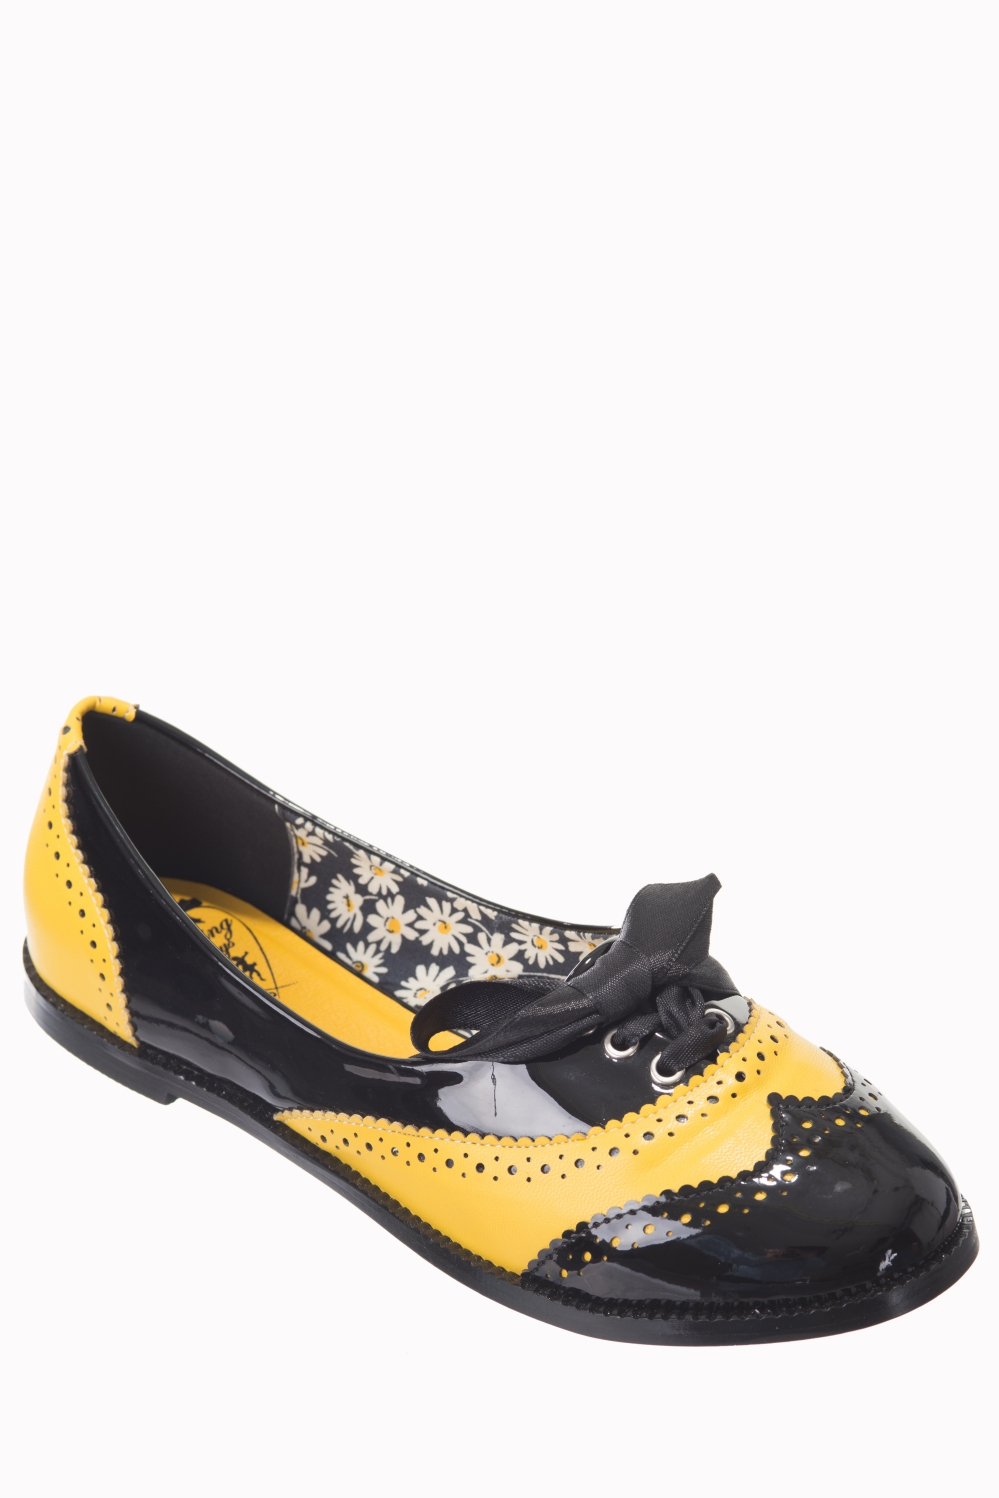 Dancing Days Milana 60s Brogue Black Yellow Shoes